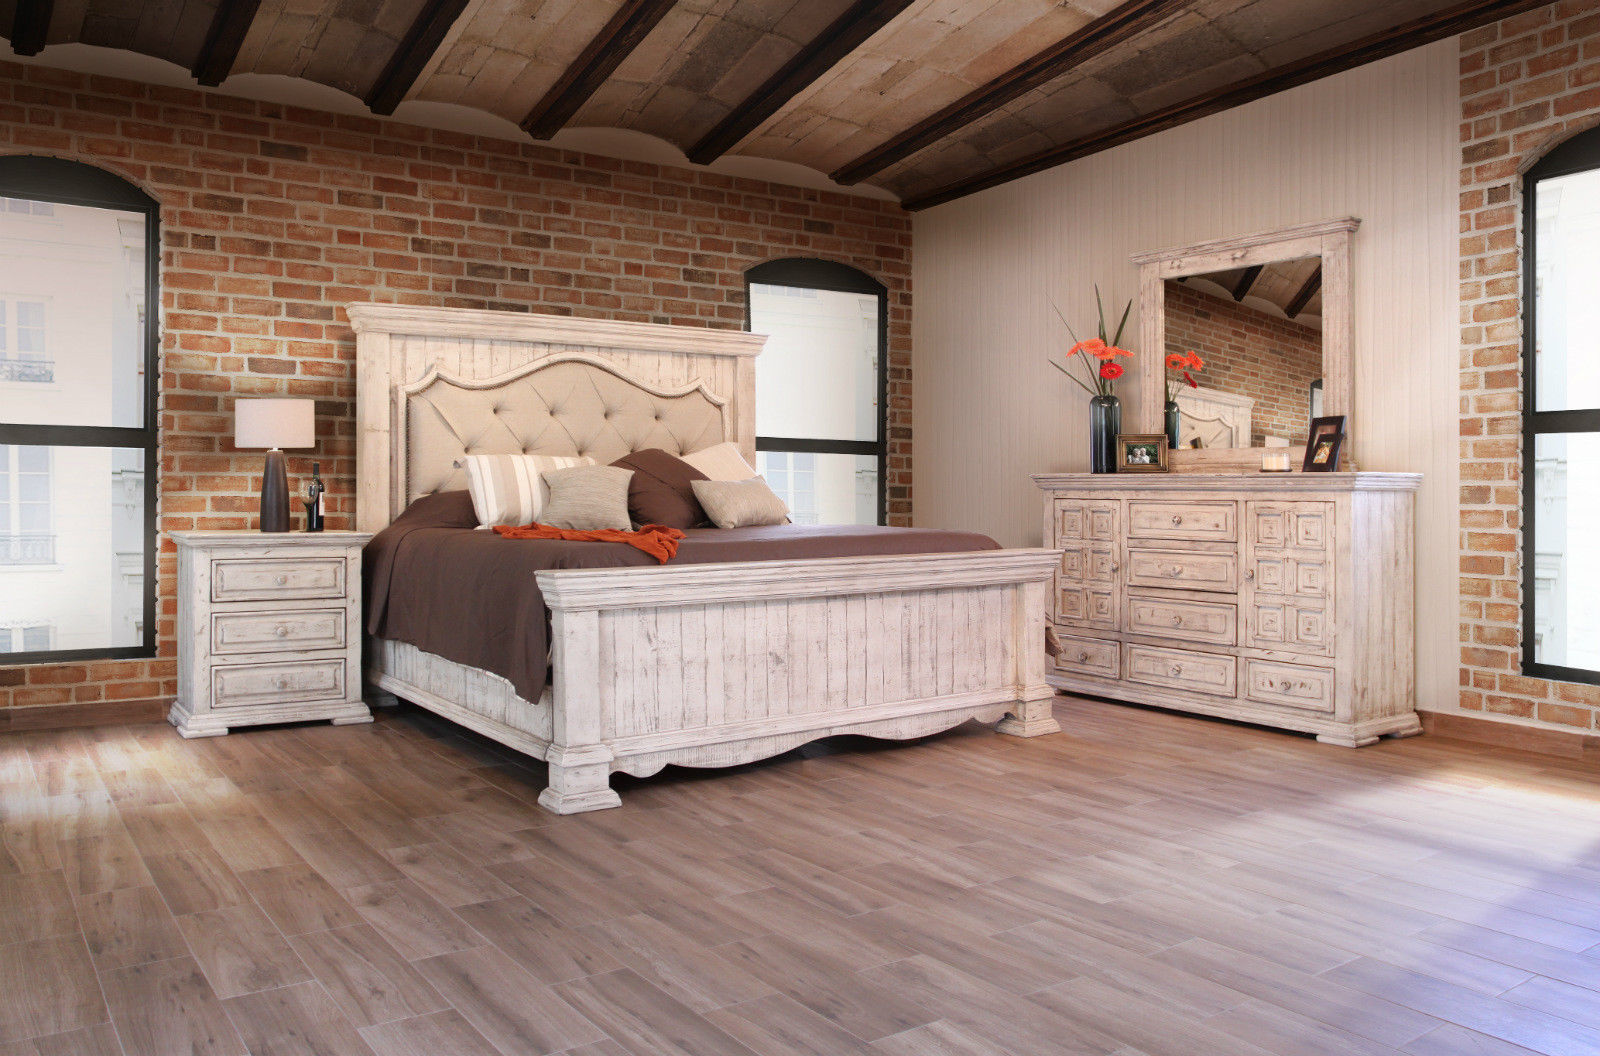 King Size Tufted Penelope Bed